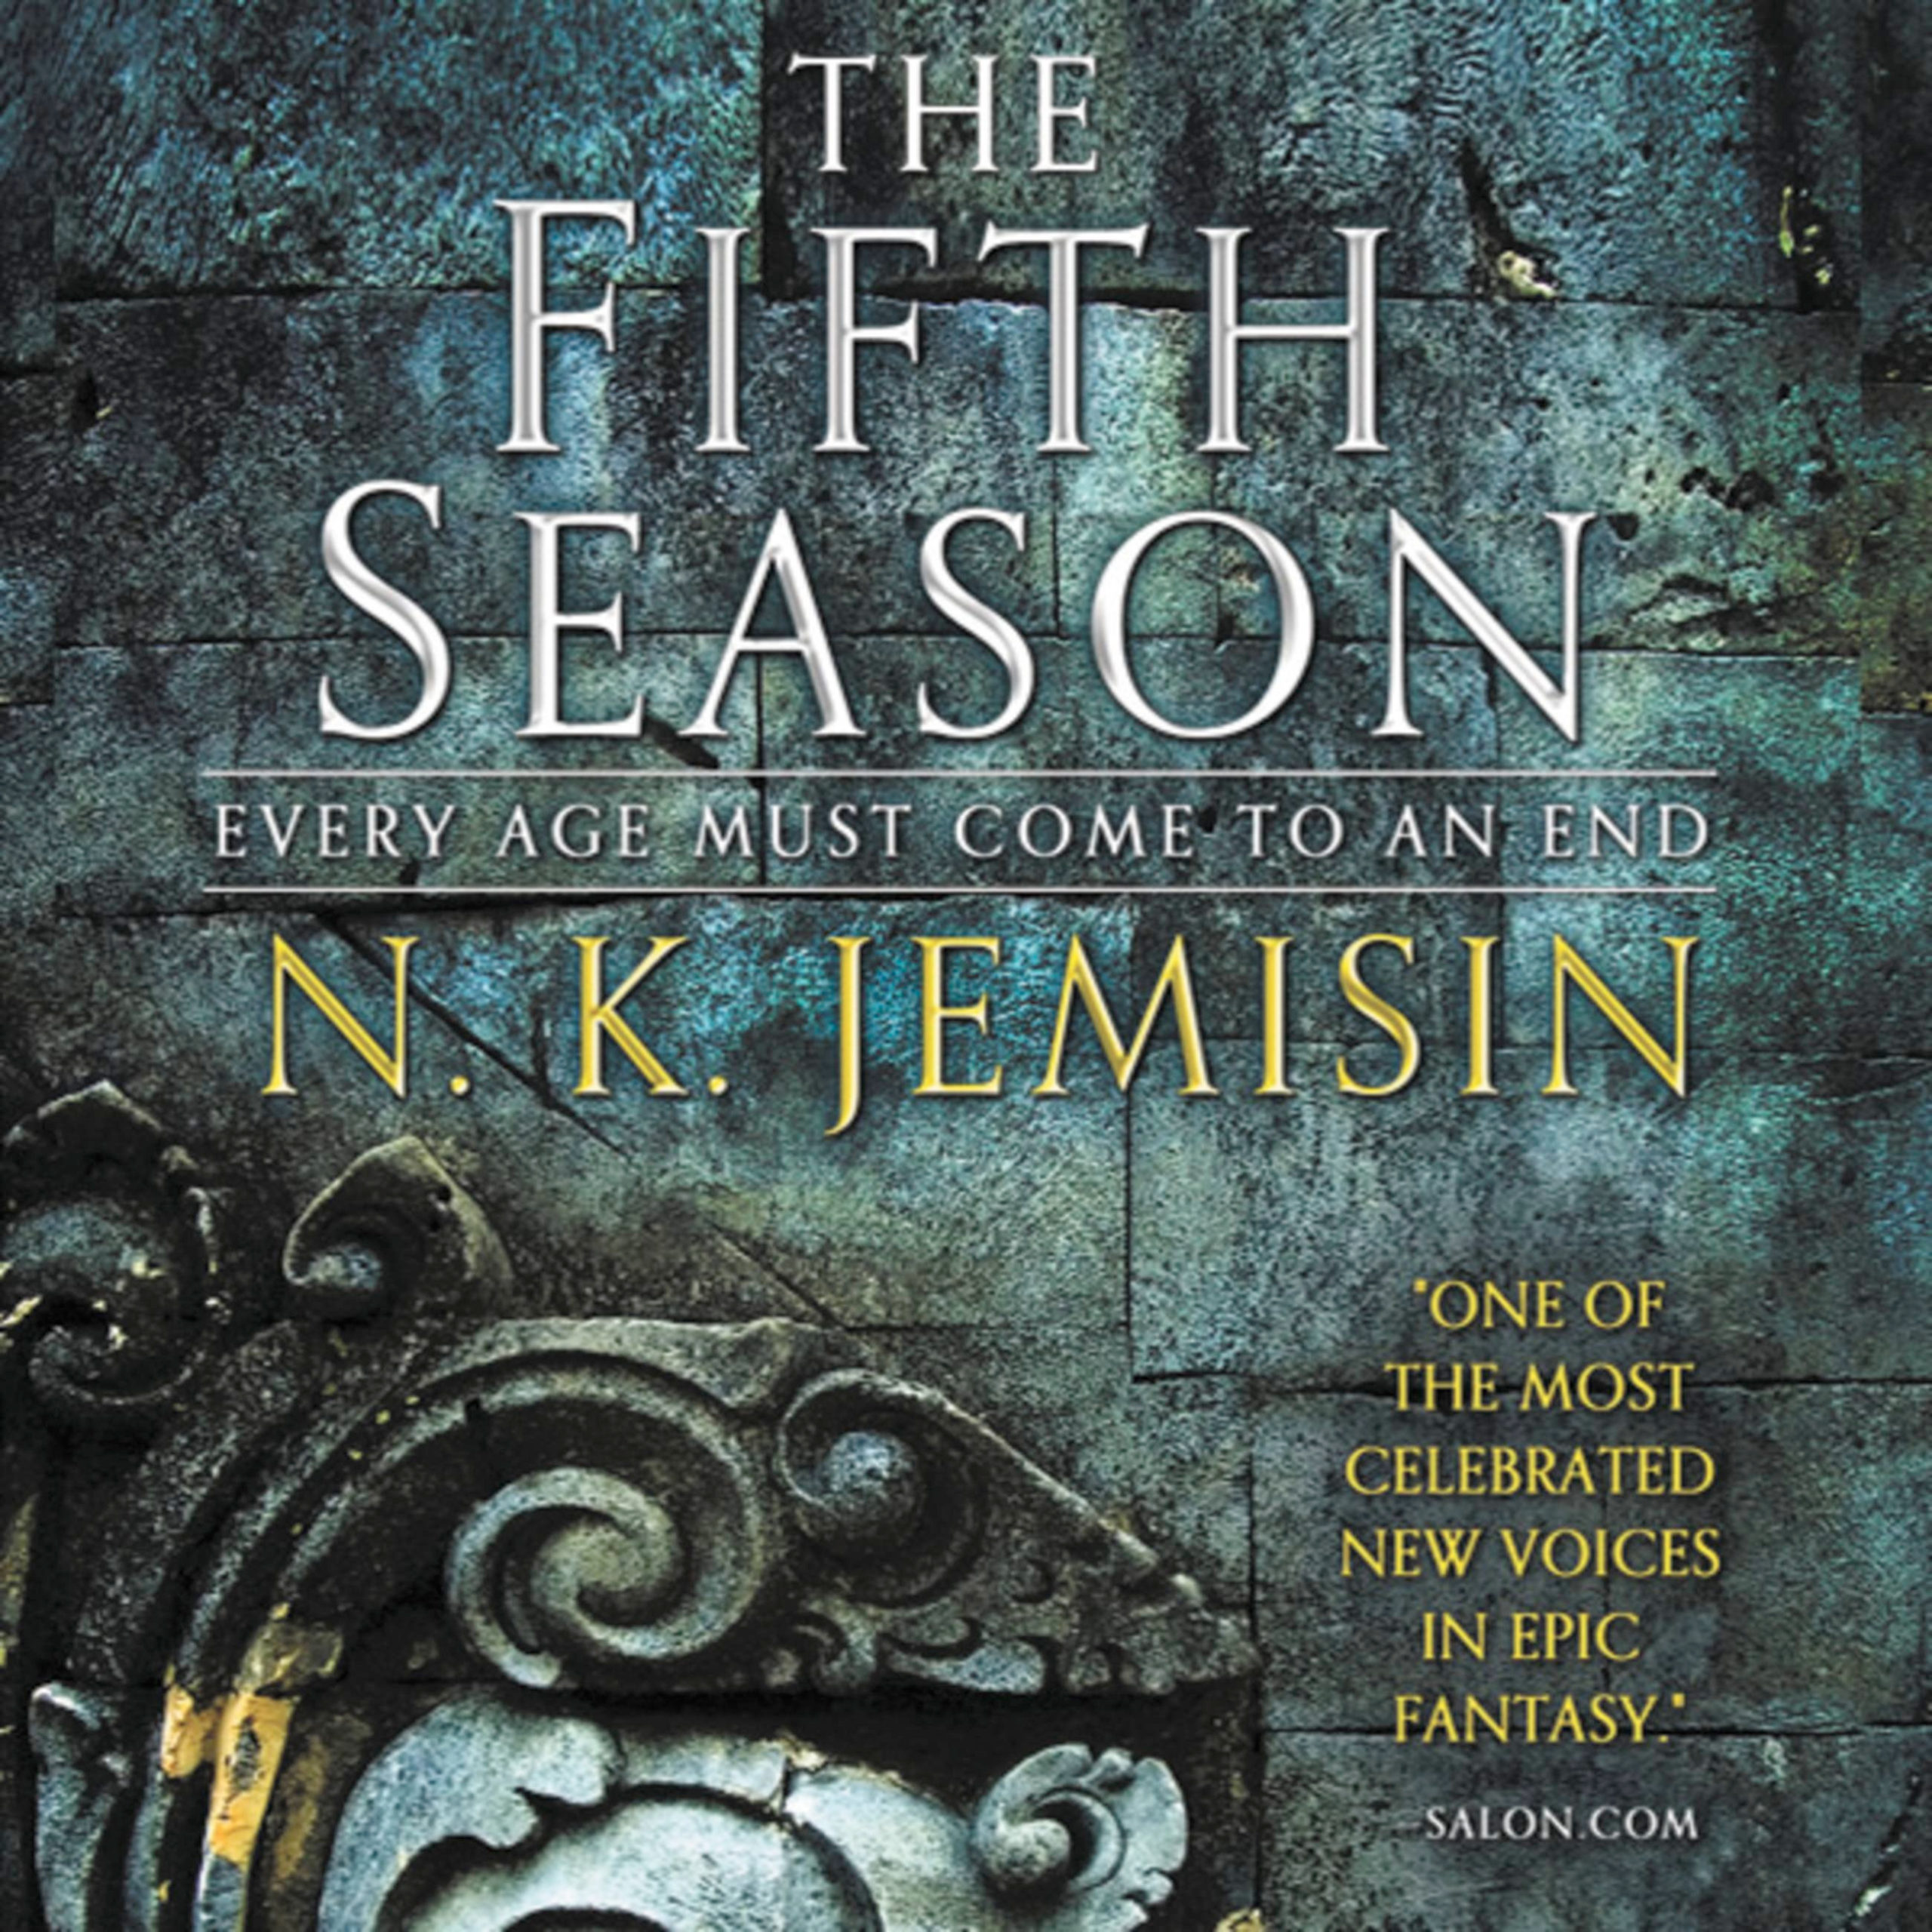 Book Review - The Fifth Season by N.K. Jemisin